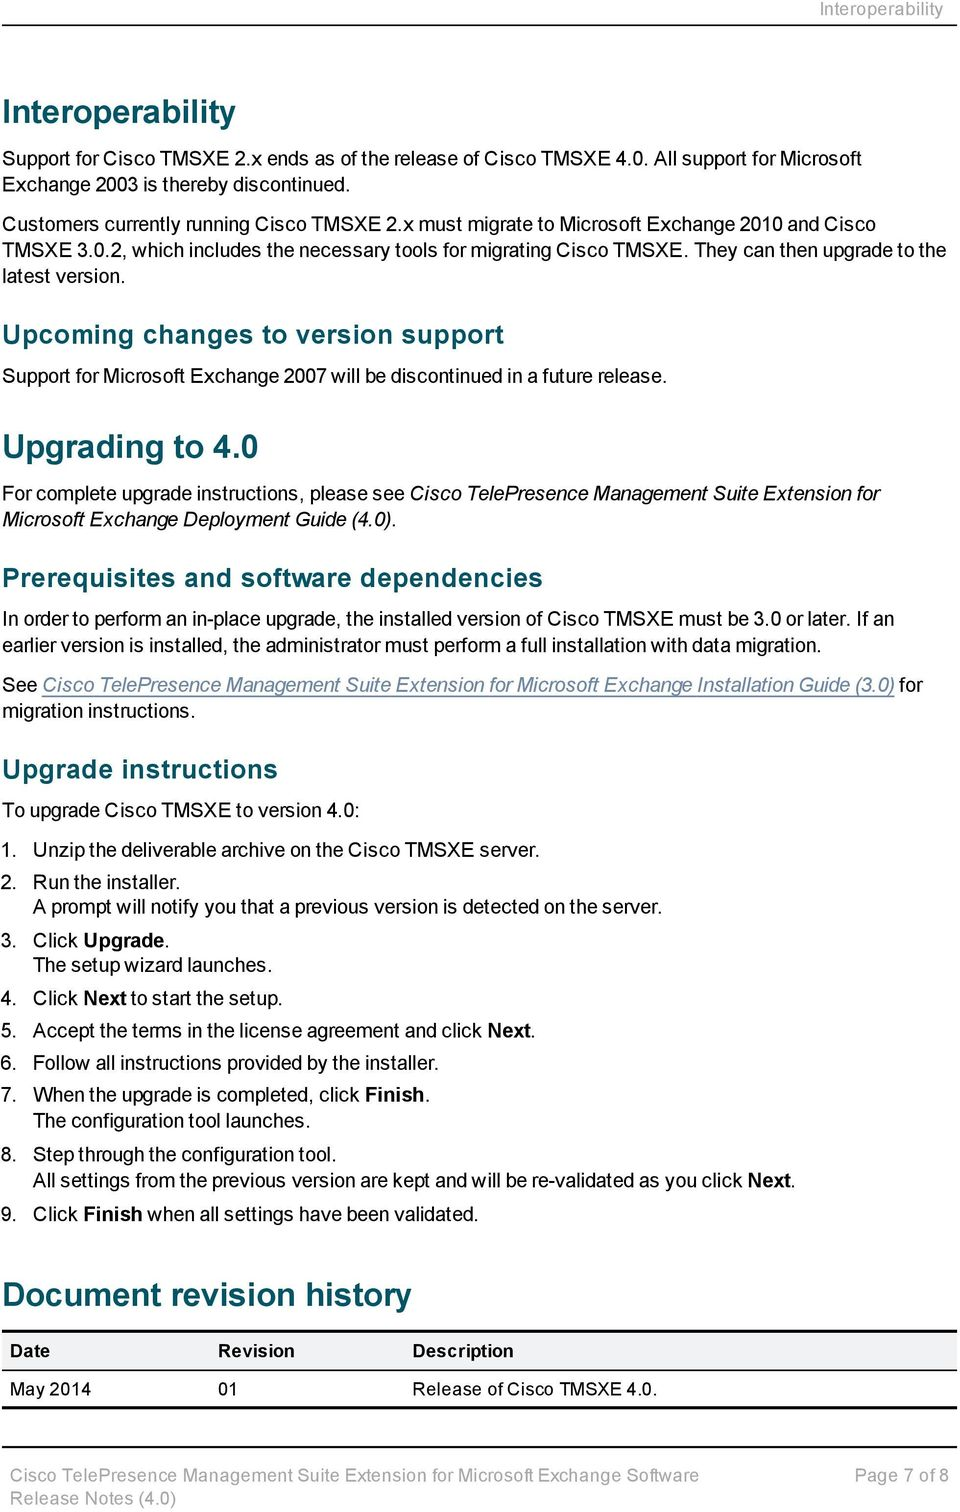 They can then upgrade to the latest version. Upcoming changes to version support Support for Microsoft Exchange 2007 will be discontinued in a future release. Upgrading to 4.